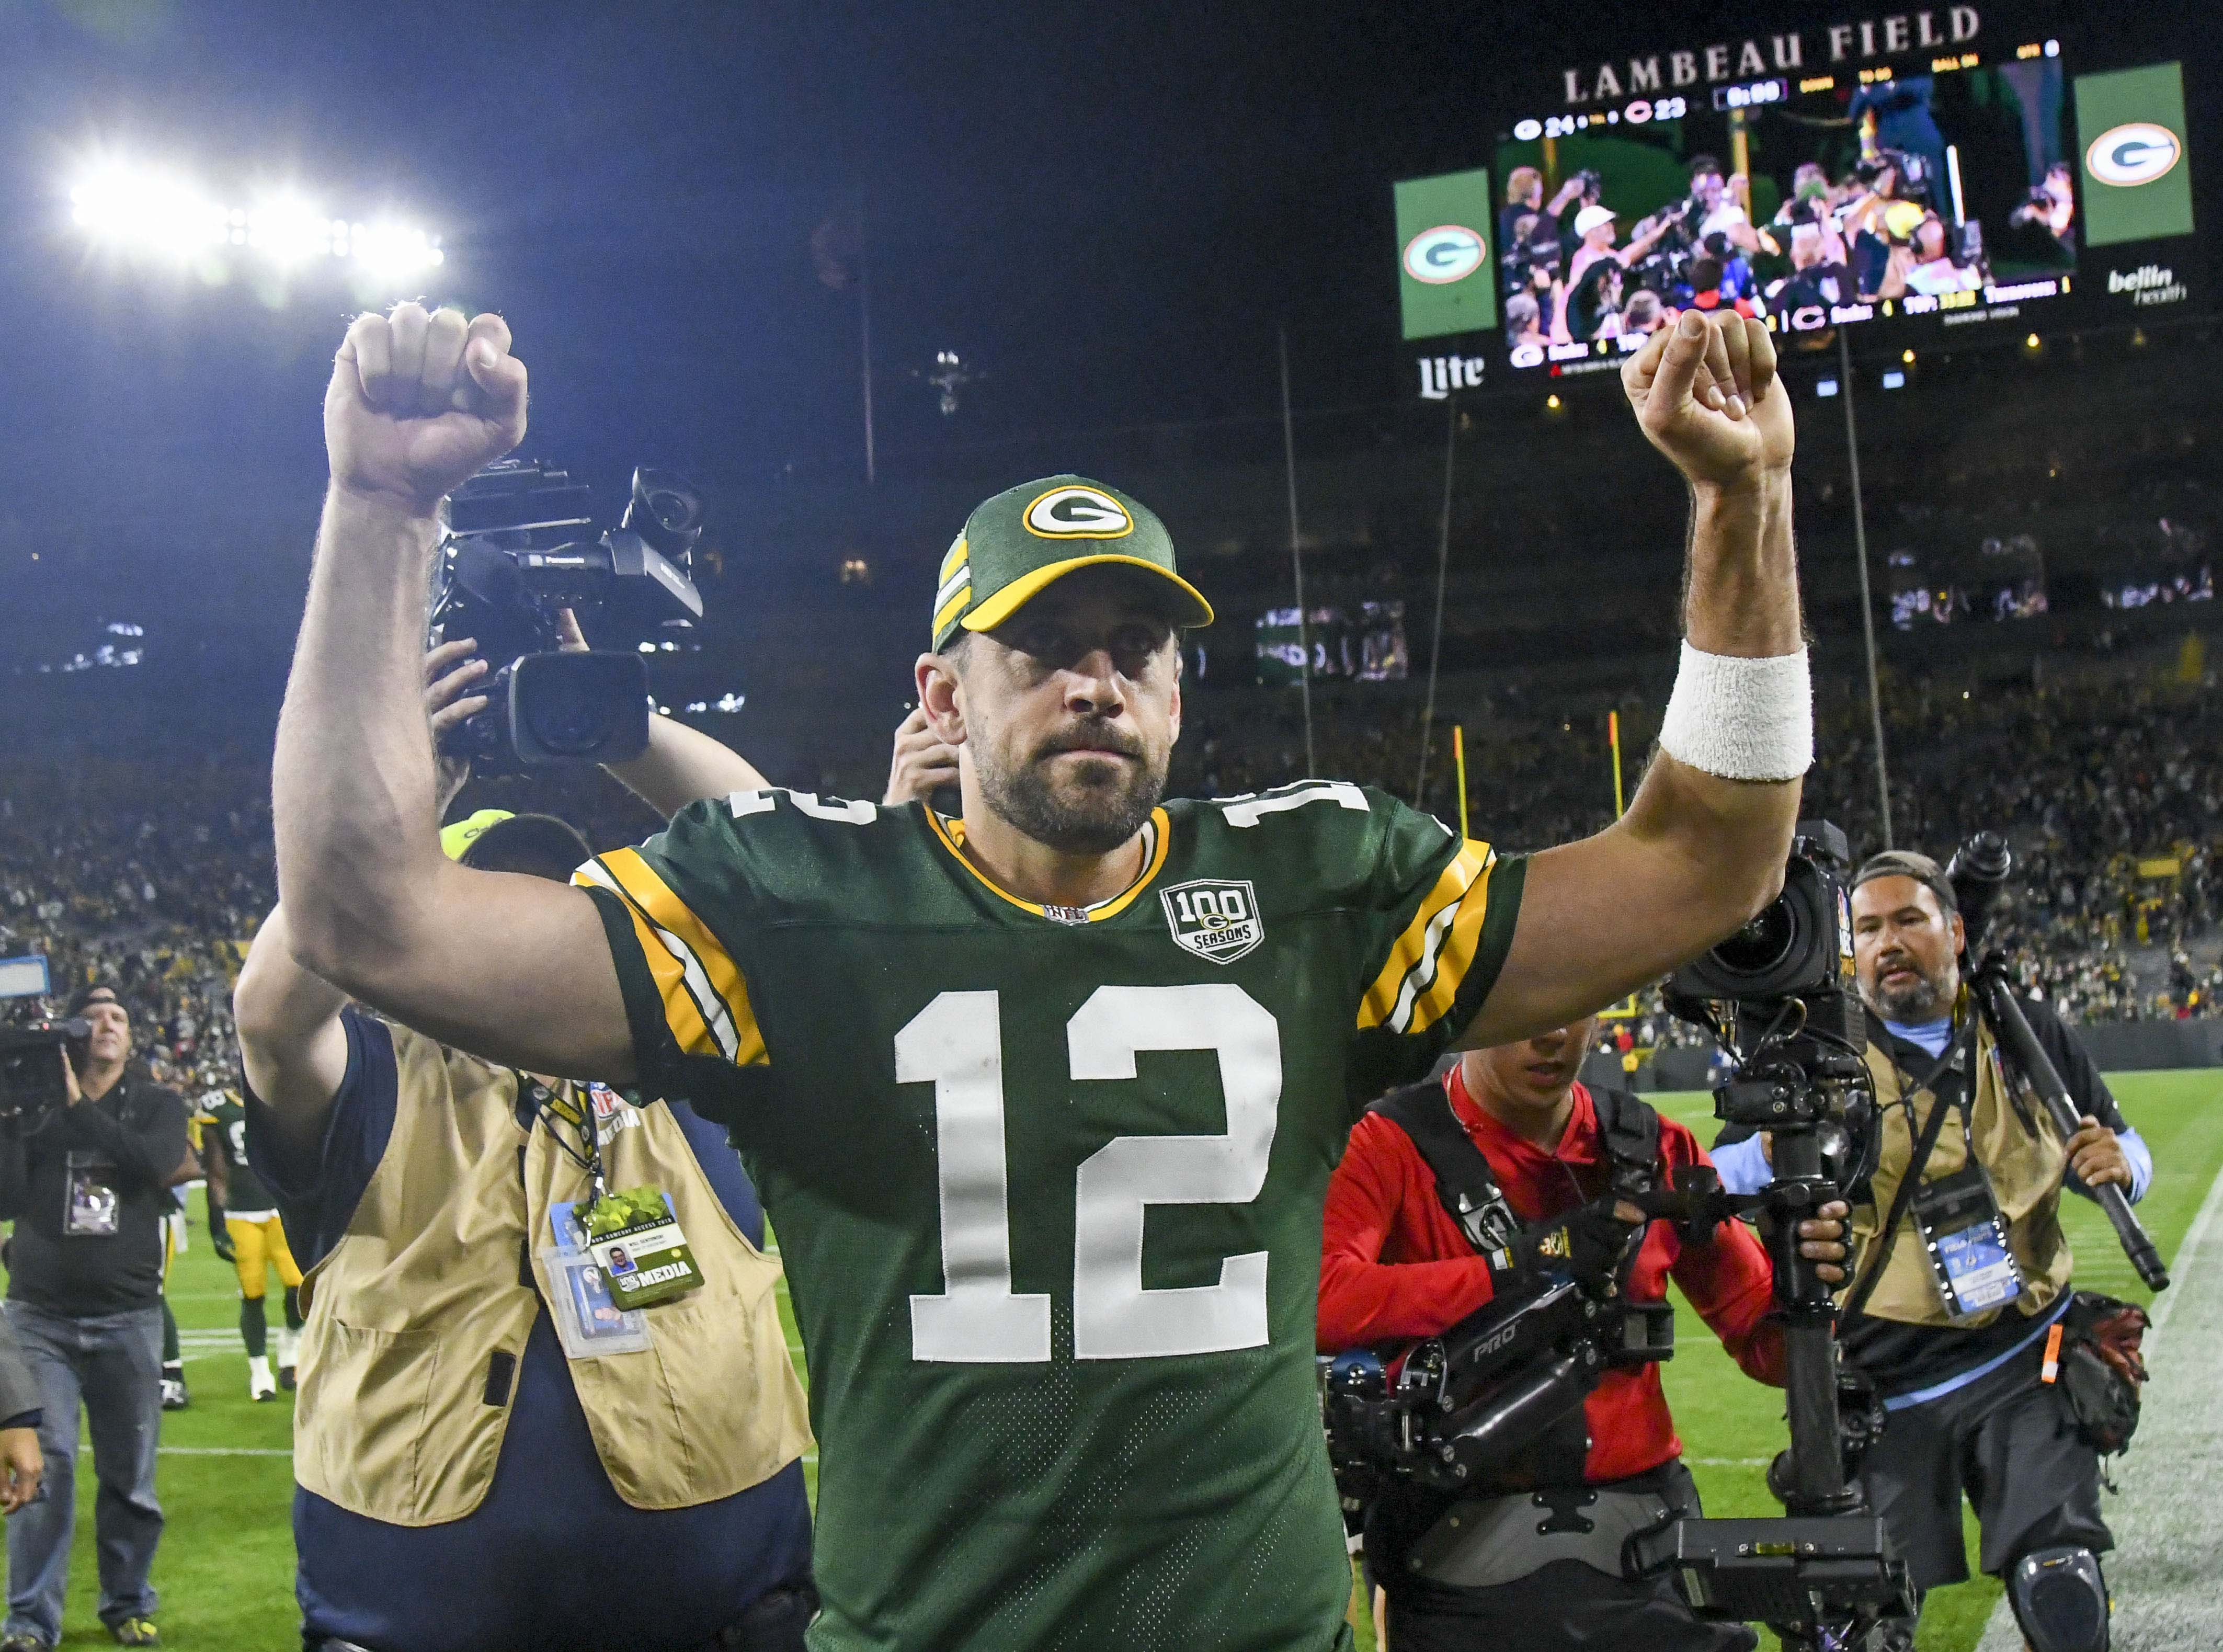 Aaron Rodgers' Week 1 feat will span generations